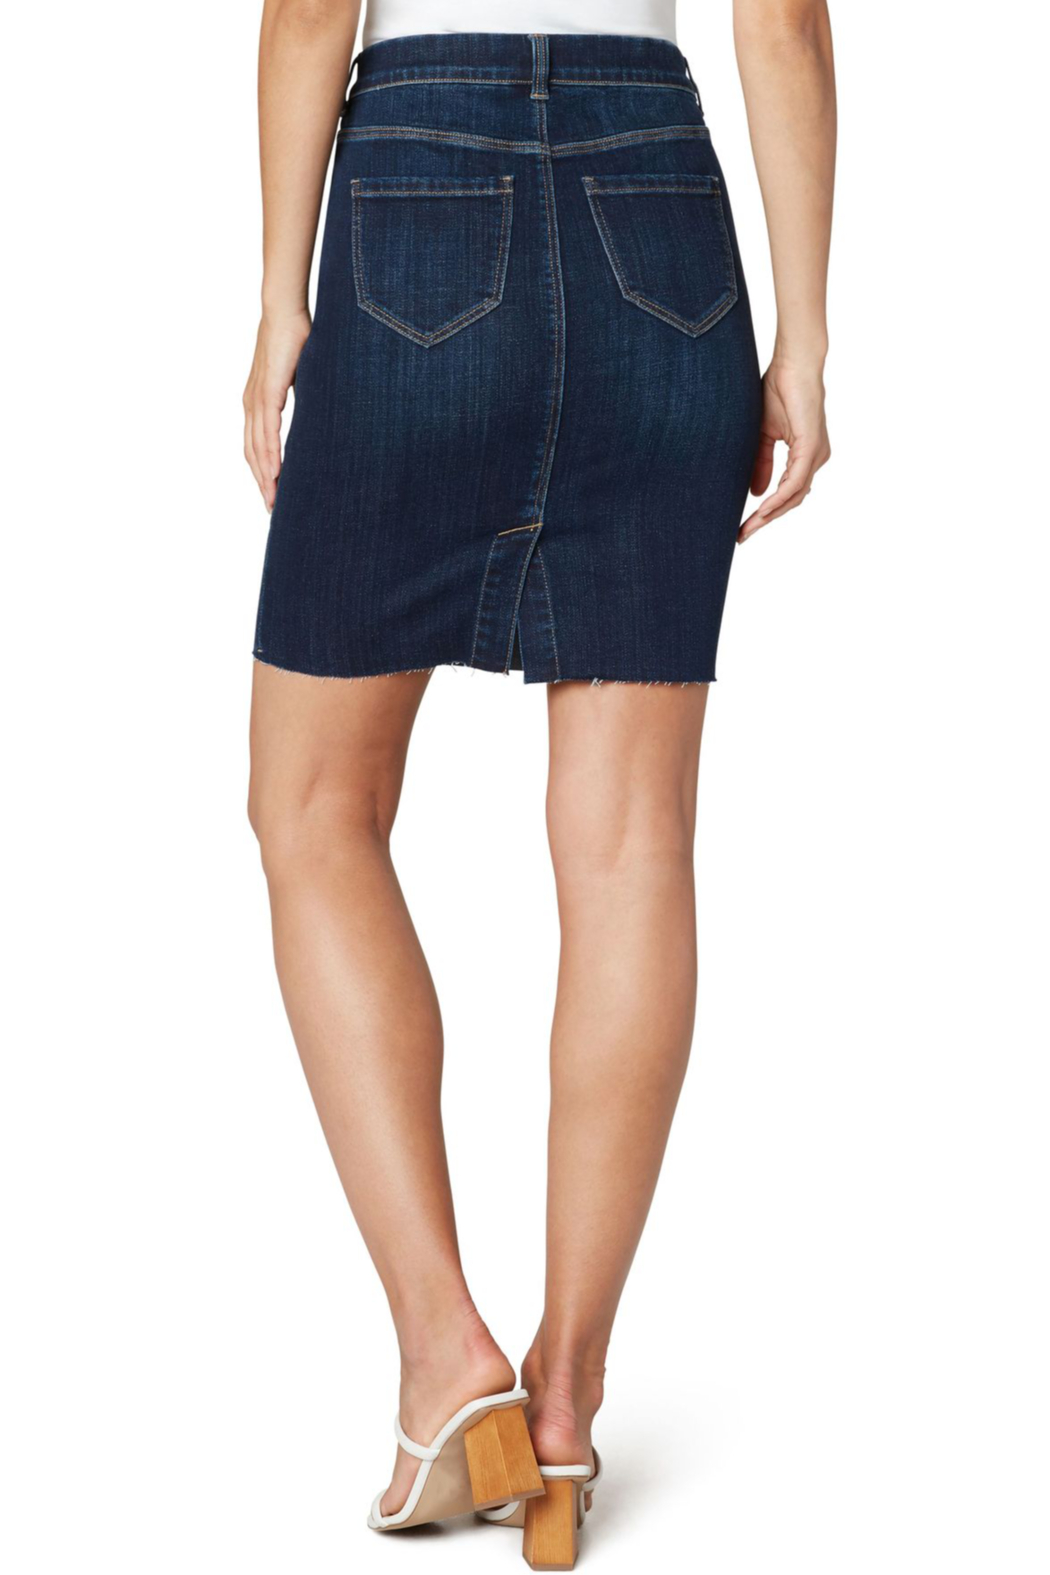 Liverpool  GIA PULL-ON CUT HEM PENCIL SKIRT - Front Full Image